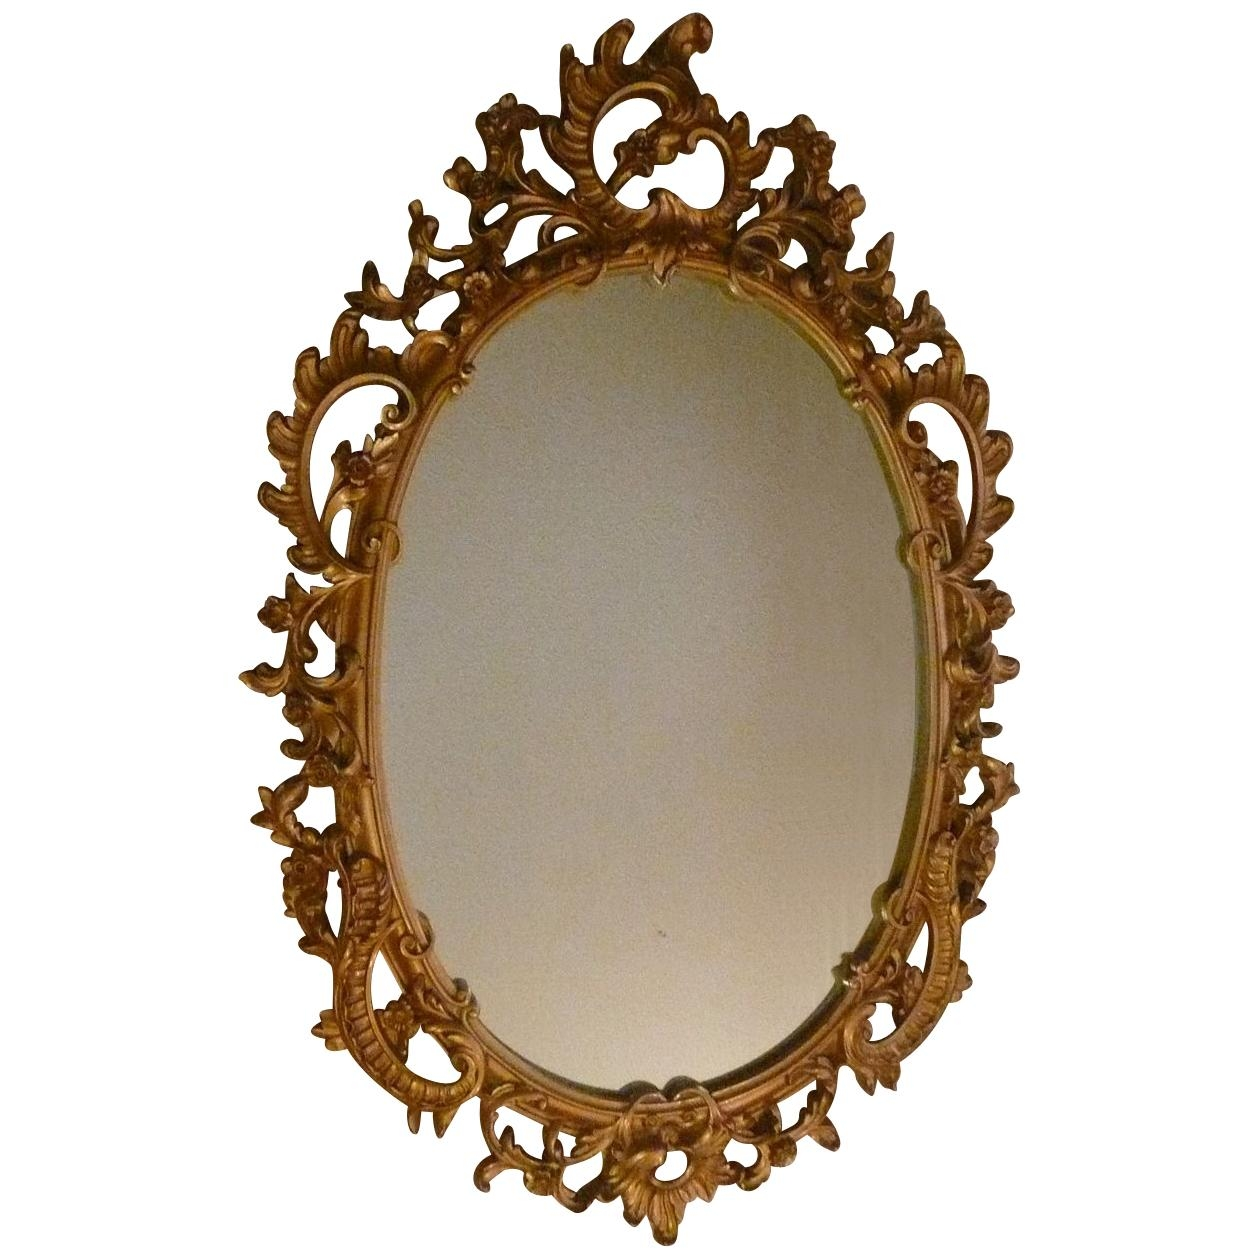 Syroco Wood Composite Mirror With Ornate Scroll From Artgate On Throughout Ornate Oval Mirrors (Image 17 of 20)